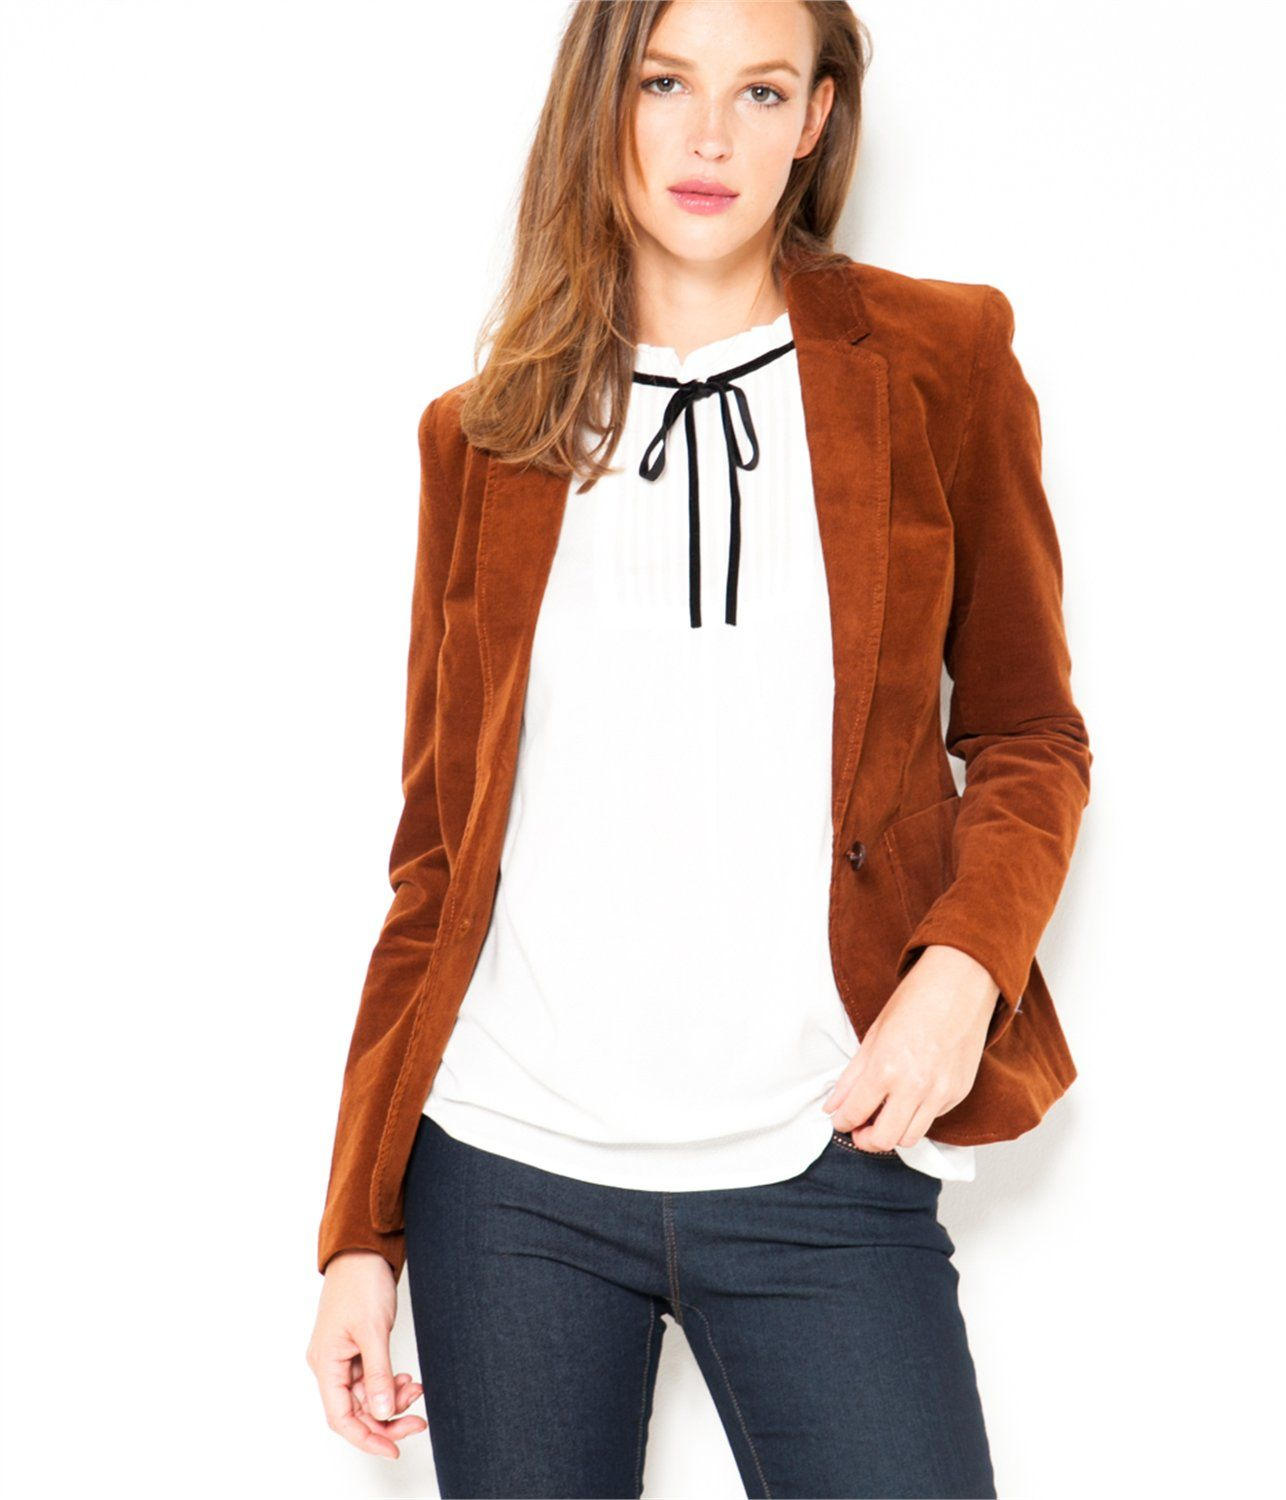 Veste en velour côtelé leather brown - Velvet jacket Camaïeu 2016 ... 42aa5a6c0ba2